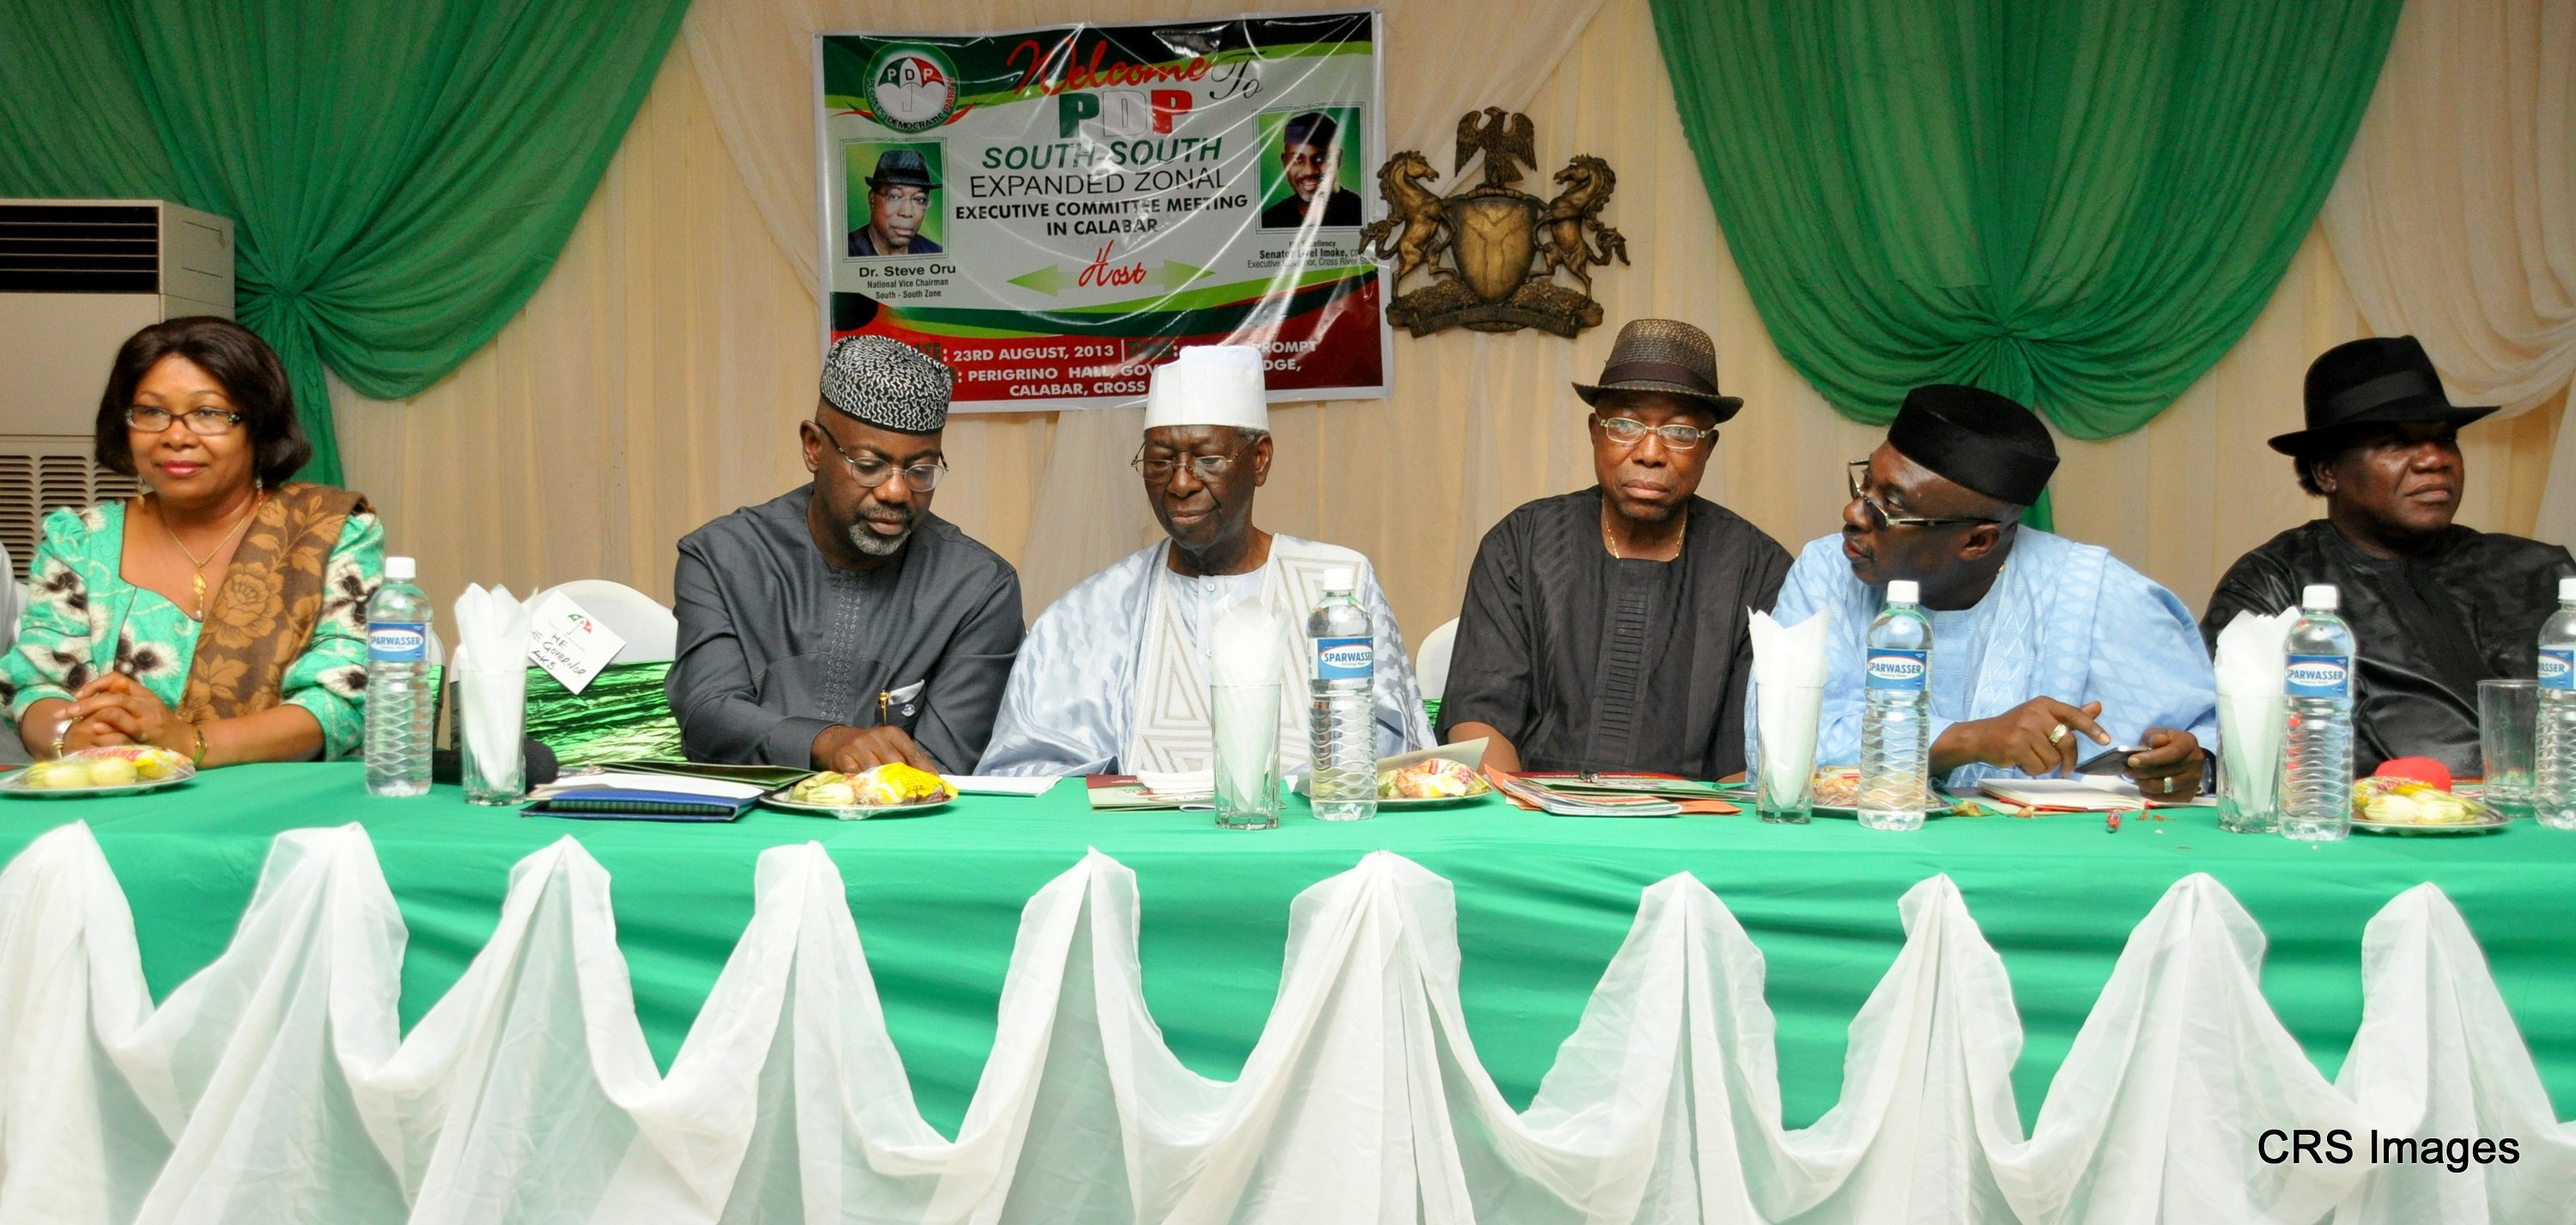 From left: Senator Helen Esuene, Senator Liyel Imoke, Chief Tony Anenih, National Vice Chairman south-south, Dr. Steve Oru,Chief of staff to President Jonathan, Chief Mike Oghiadomhe, Minister of Tourism and National Orientation, Chief Edem Duke at the opening ceremony of the PDP, South-South expanded zonal executive committee meeting in Calabar.